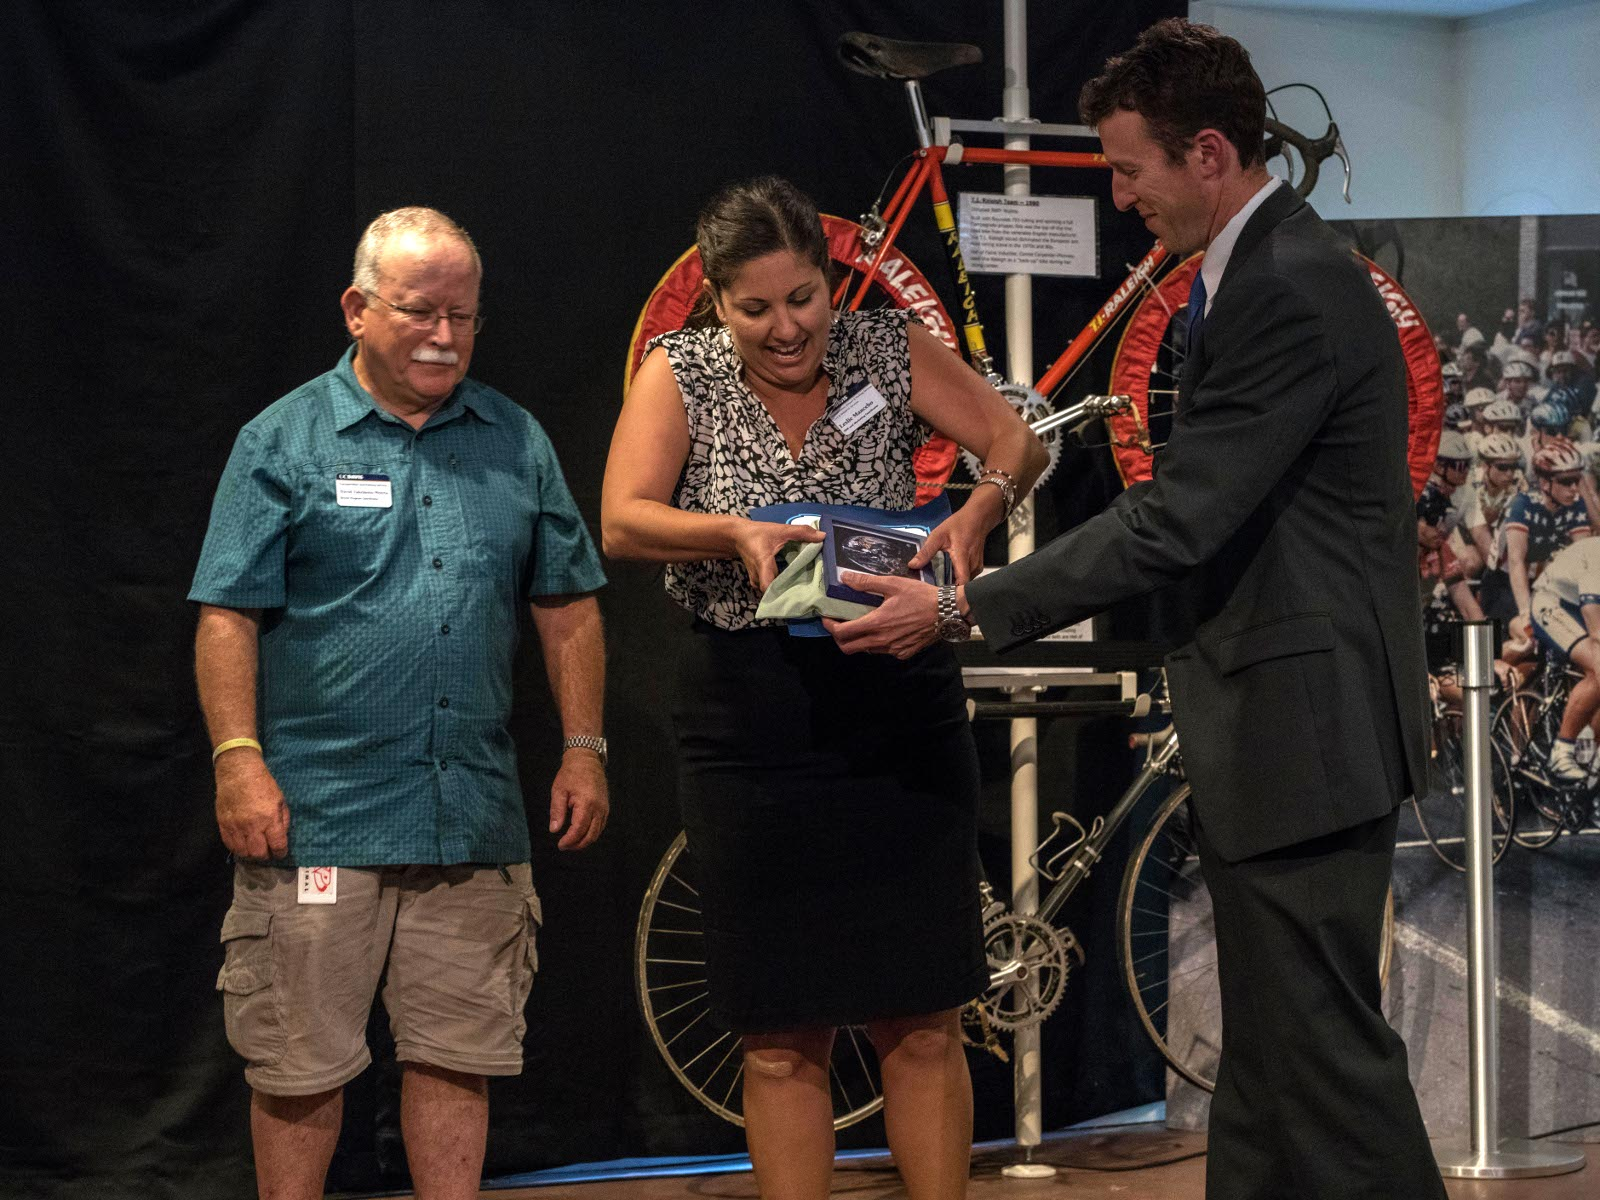 "While David Takamoto-Weerts looks on, Mayor Dan Wolk presents Leslie Mancebo with a Cool Davis Climate Solution Award for the achievements of the UC Davis Transportation Services. Leslie serves as Transportation Marketing Coordinator and David Takemoto-Weerts as bike coordinator for the department. Cool Davis honored Transportation Services' program for its ""goClub,"" which provides incentives and support to students and employees who choose to commute by bike, foot, bus, train, or carpool rather than use a single-occupant vehicle. With over 4,000 members in the goClub, Transportation Services has made UC Davis a national leader in the effort to cut carbon emissions."